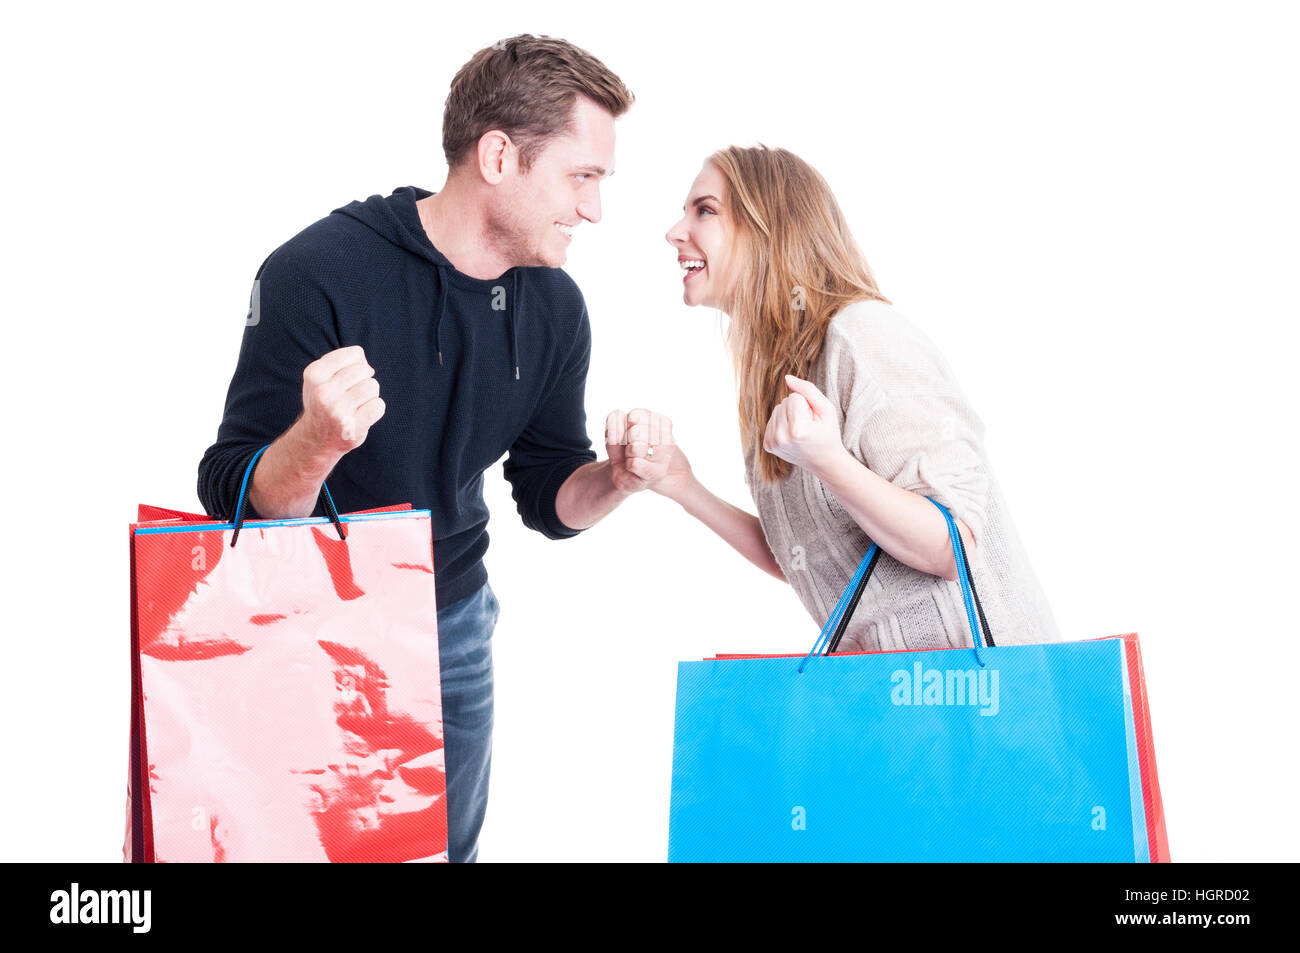 Couple holding shopping bags making winning gesture  with fists looking at each other and being happy isolated on - Stock Image